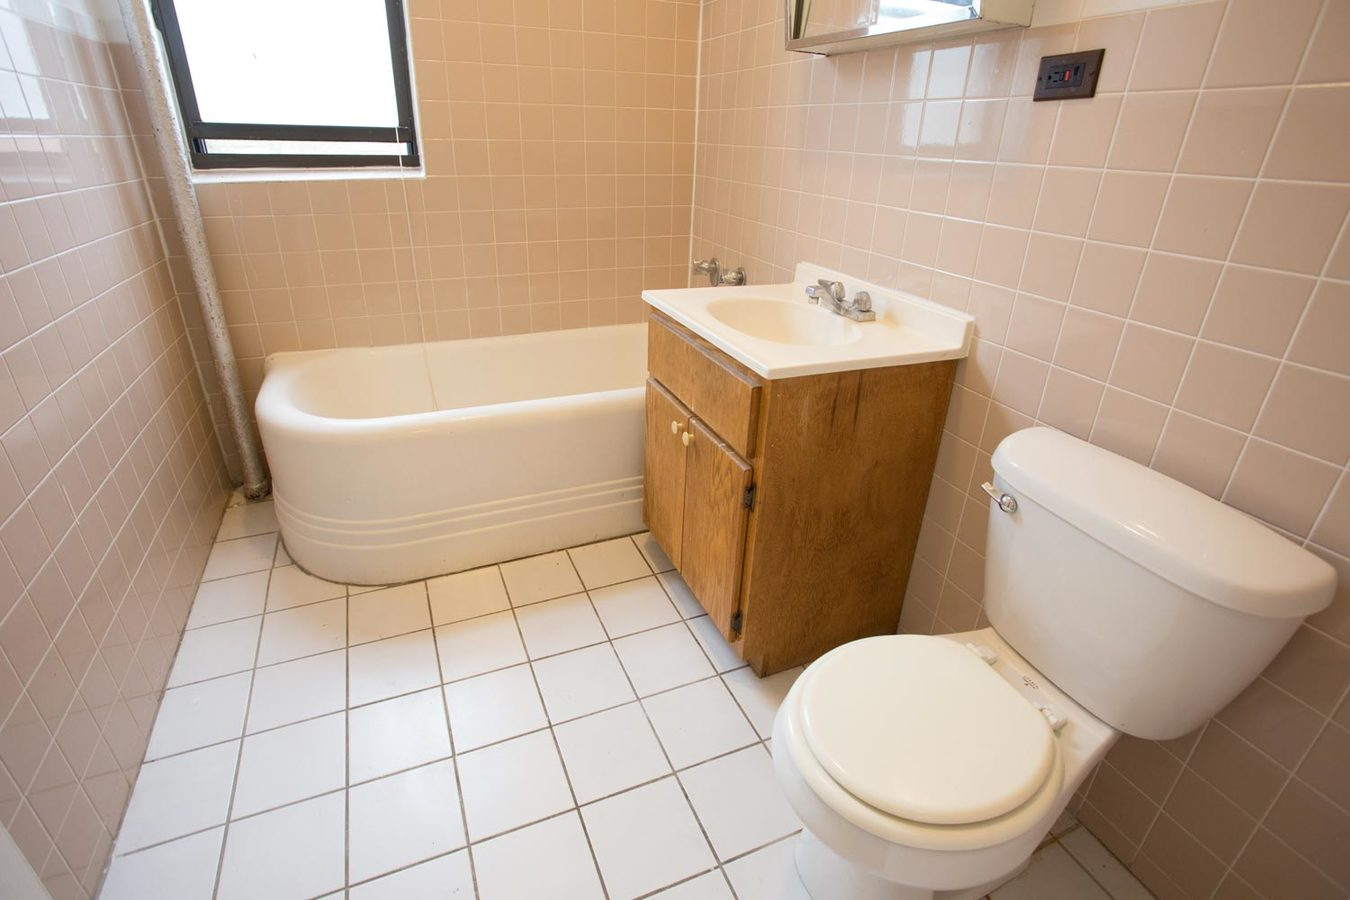 2 Bedrooms 1 Bathroom Apartment for rent at 5416 S. Woodlawn Avenue in Chicago, IL